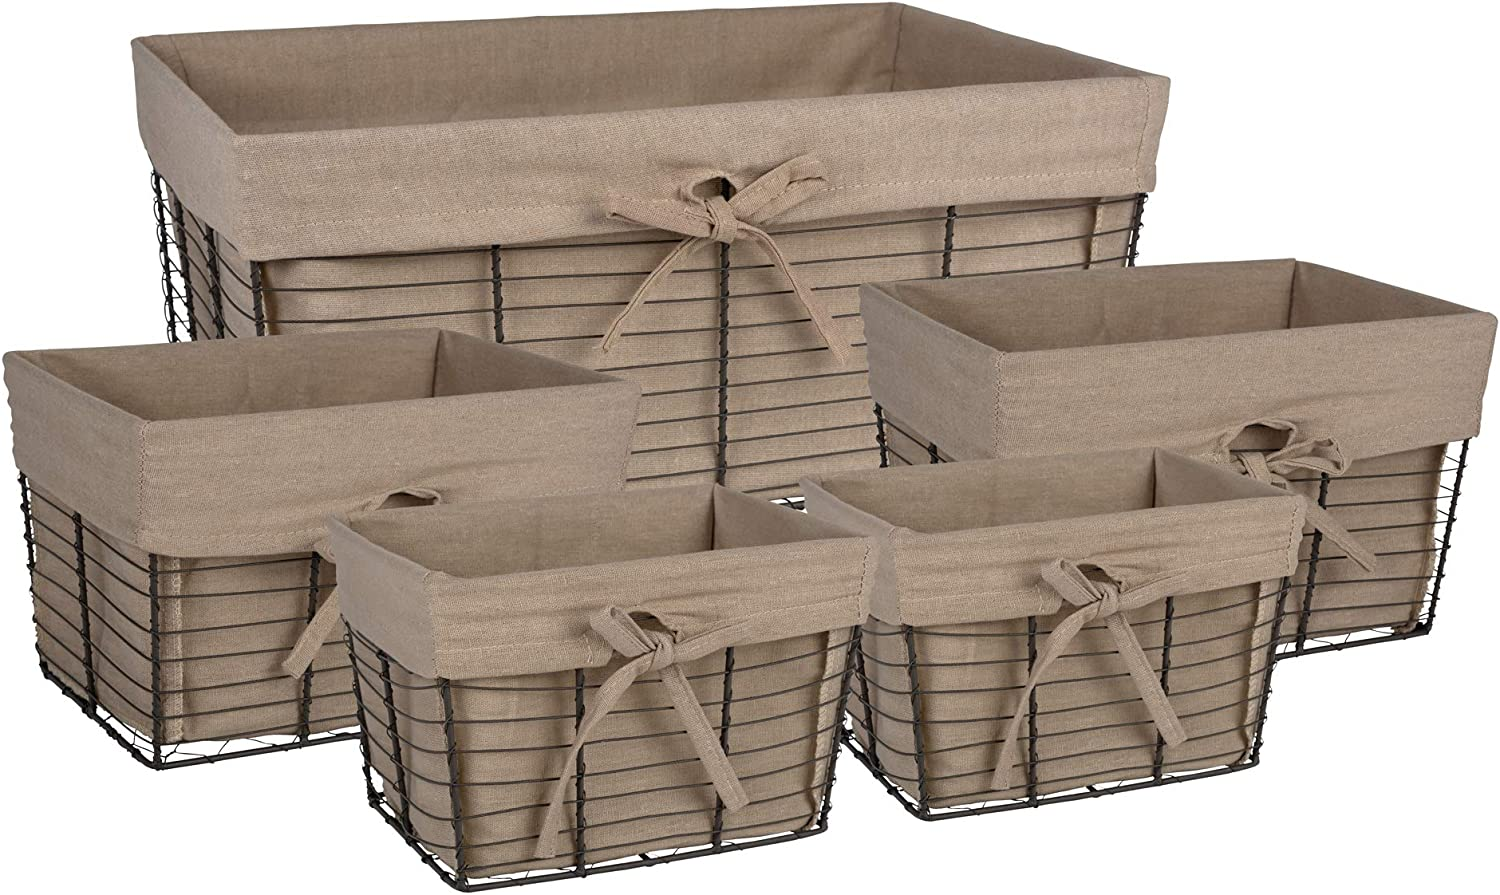 DII Vintage Grey Wire Baskets for Storage Removable Fabric Liner, Assorted Set of 5, Taupe, 5 Piece